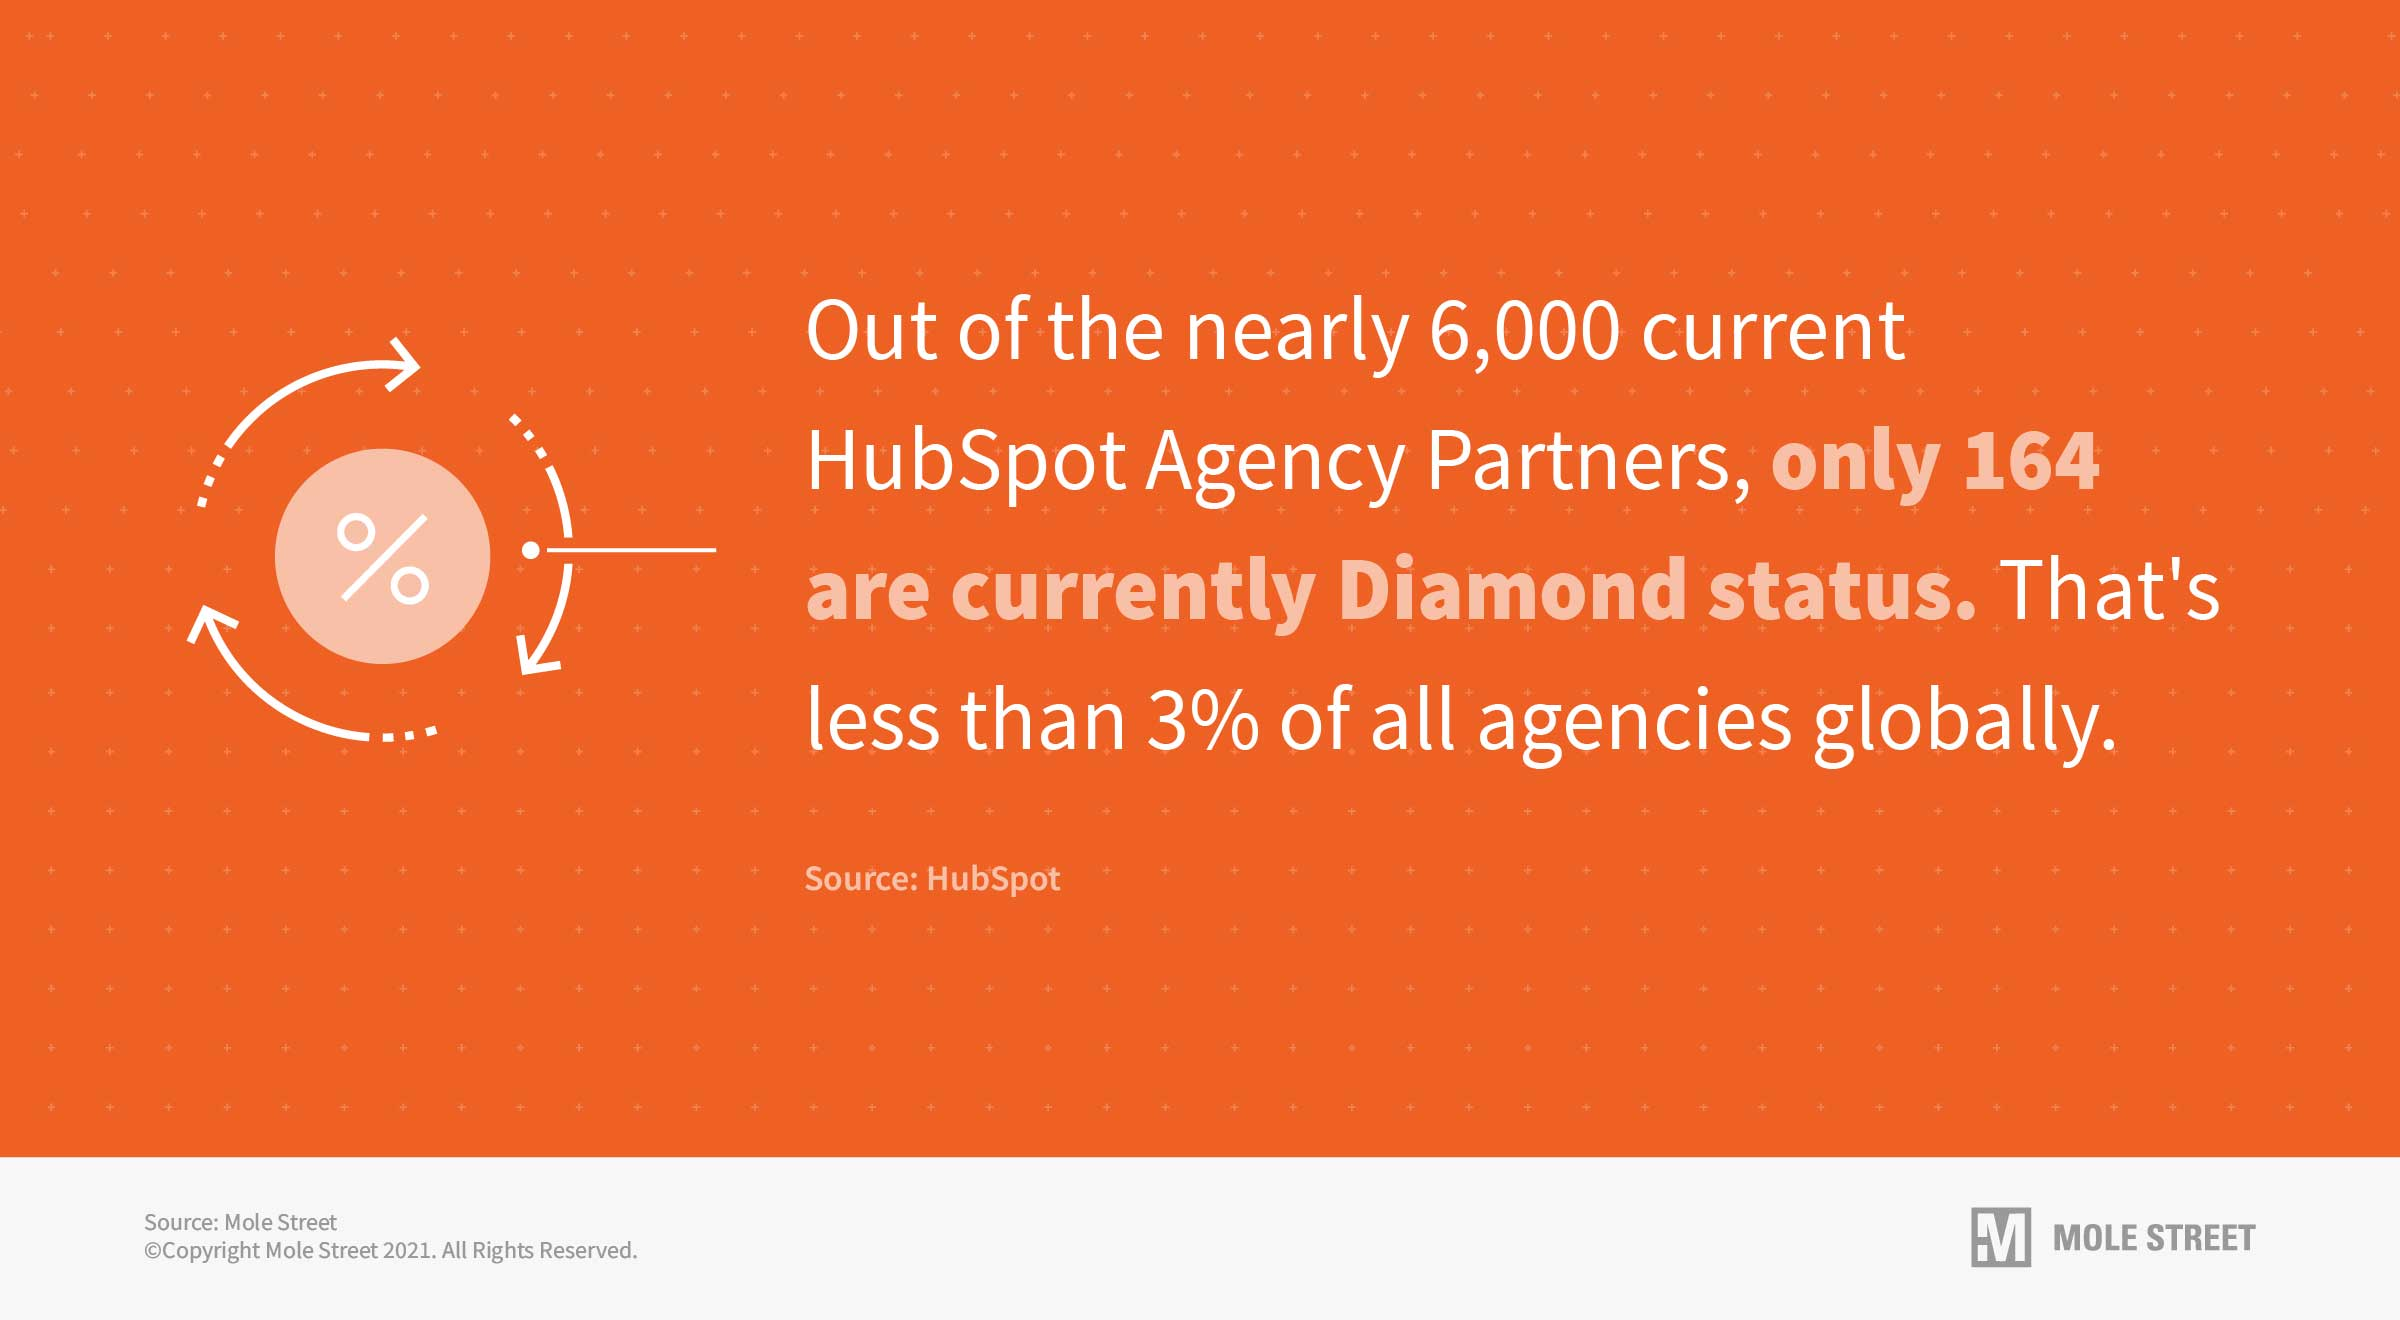 Only 164 HubSpot agency partners have reached Diamond status to date.